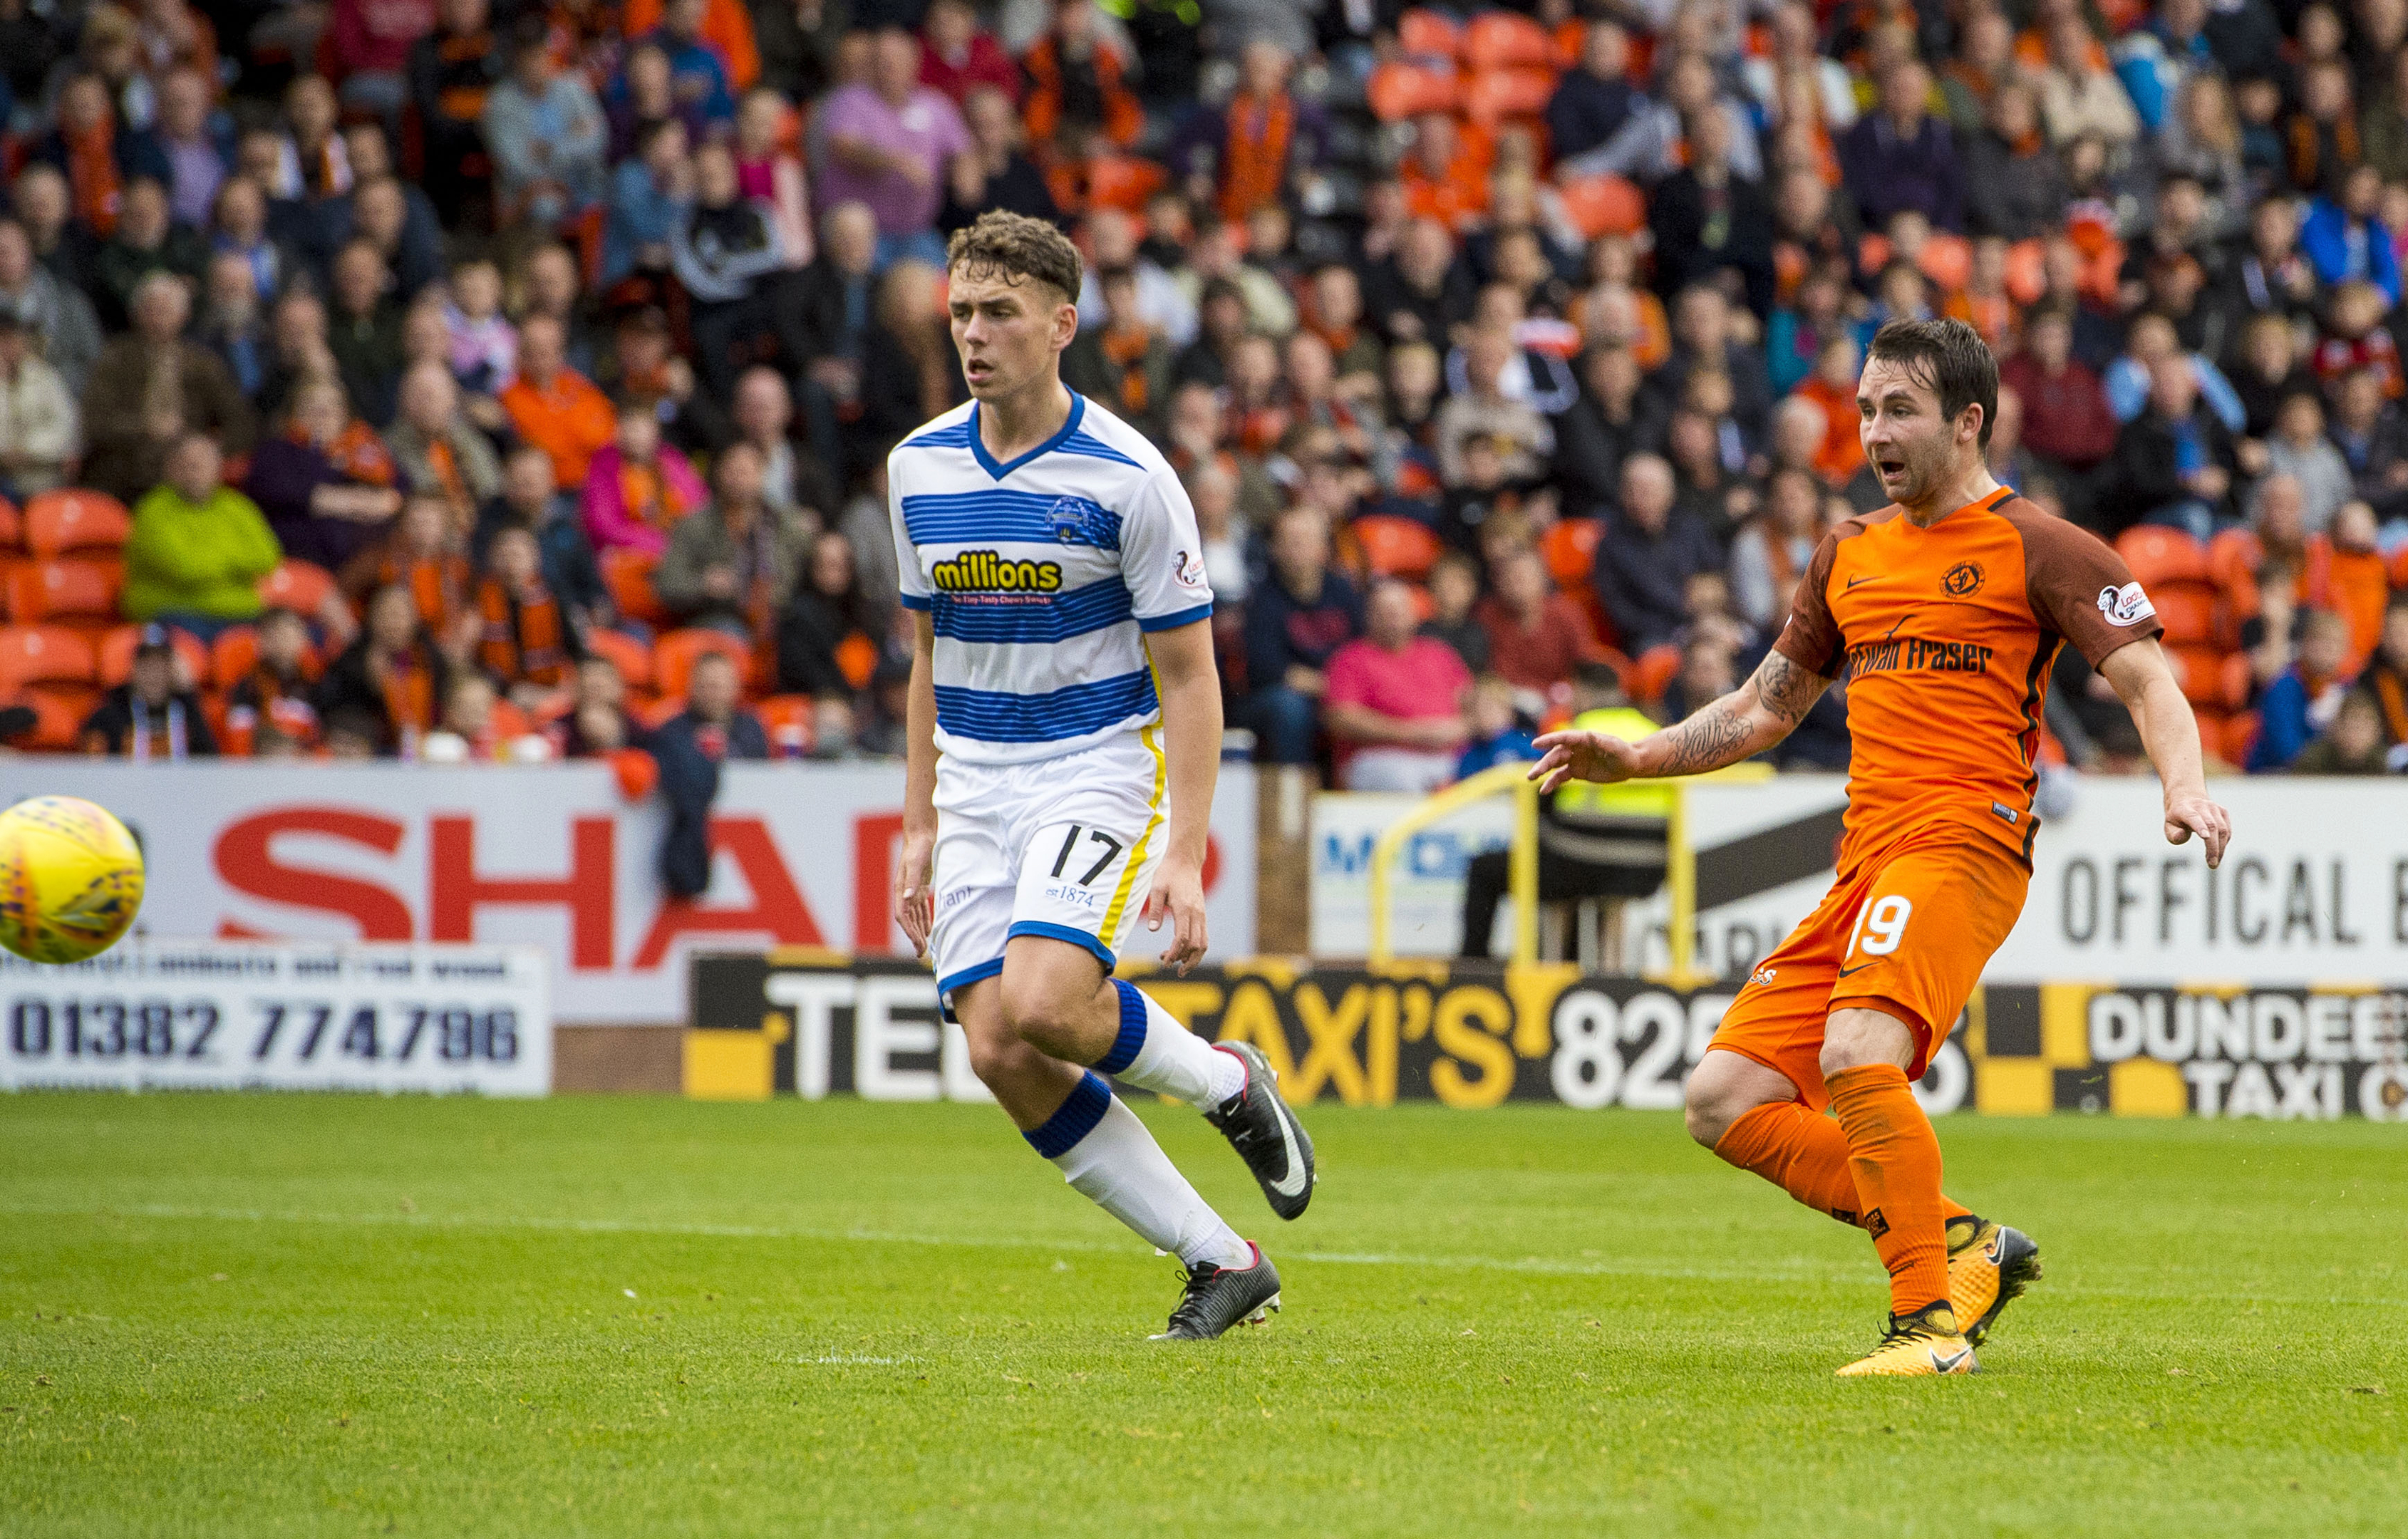 United beat Morton 2-1 the last time the two sides met at Tannadice.